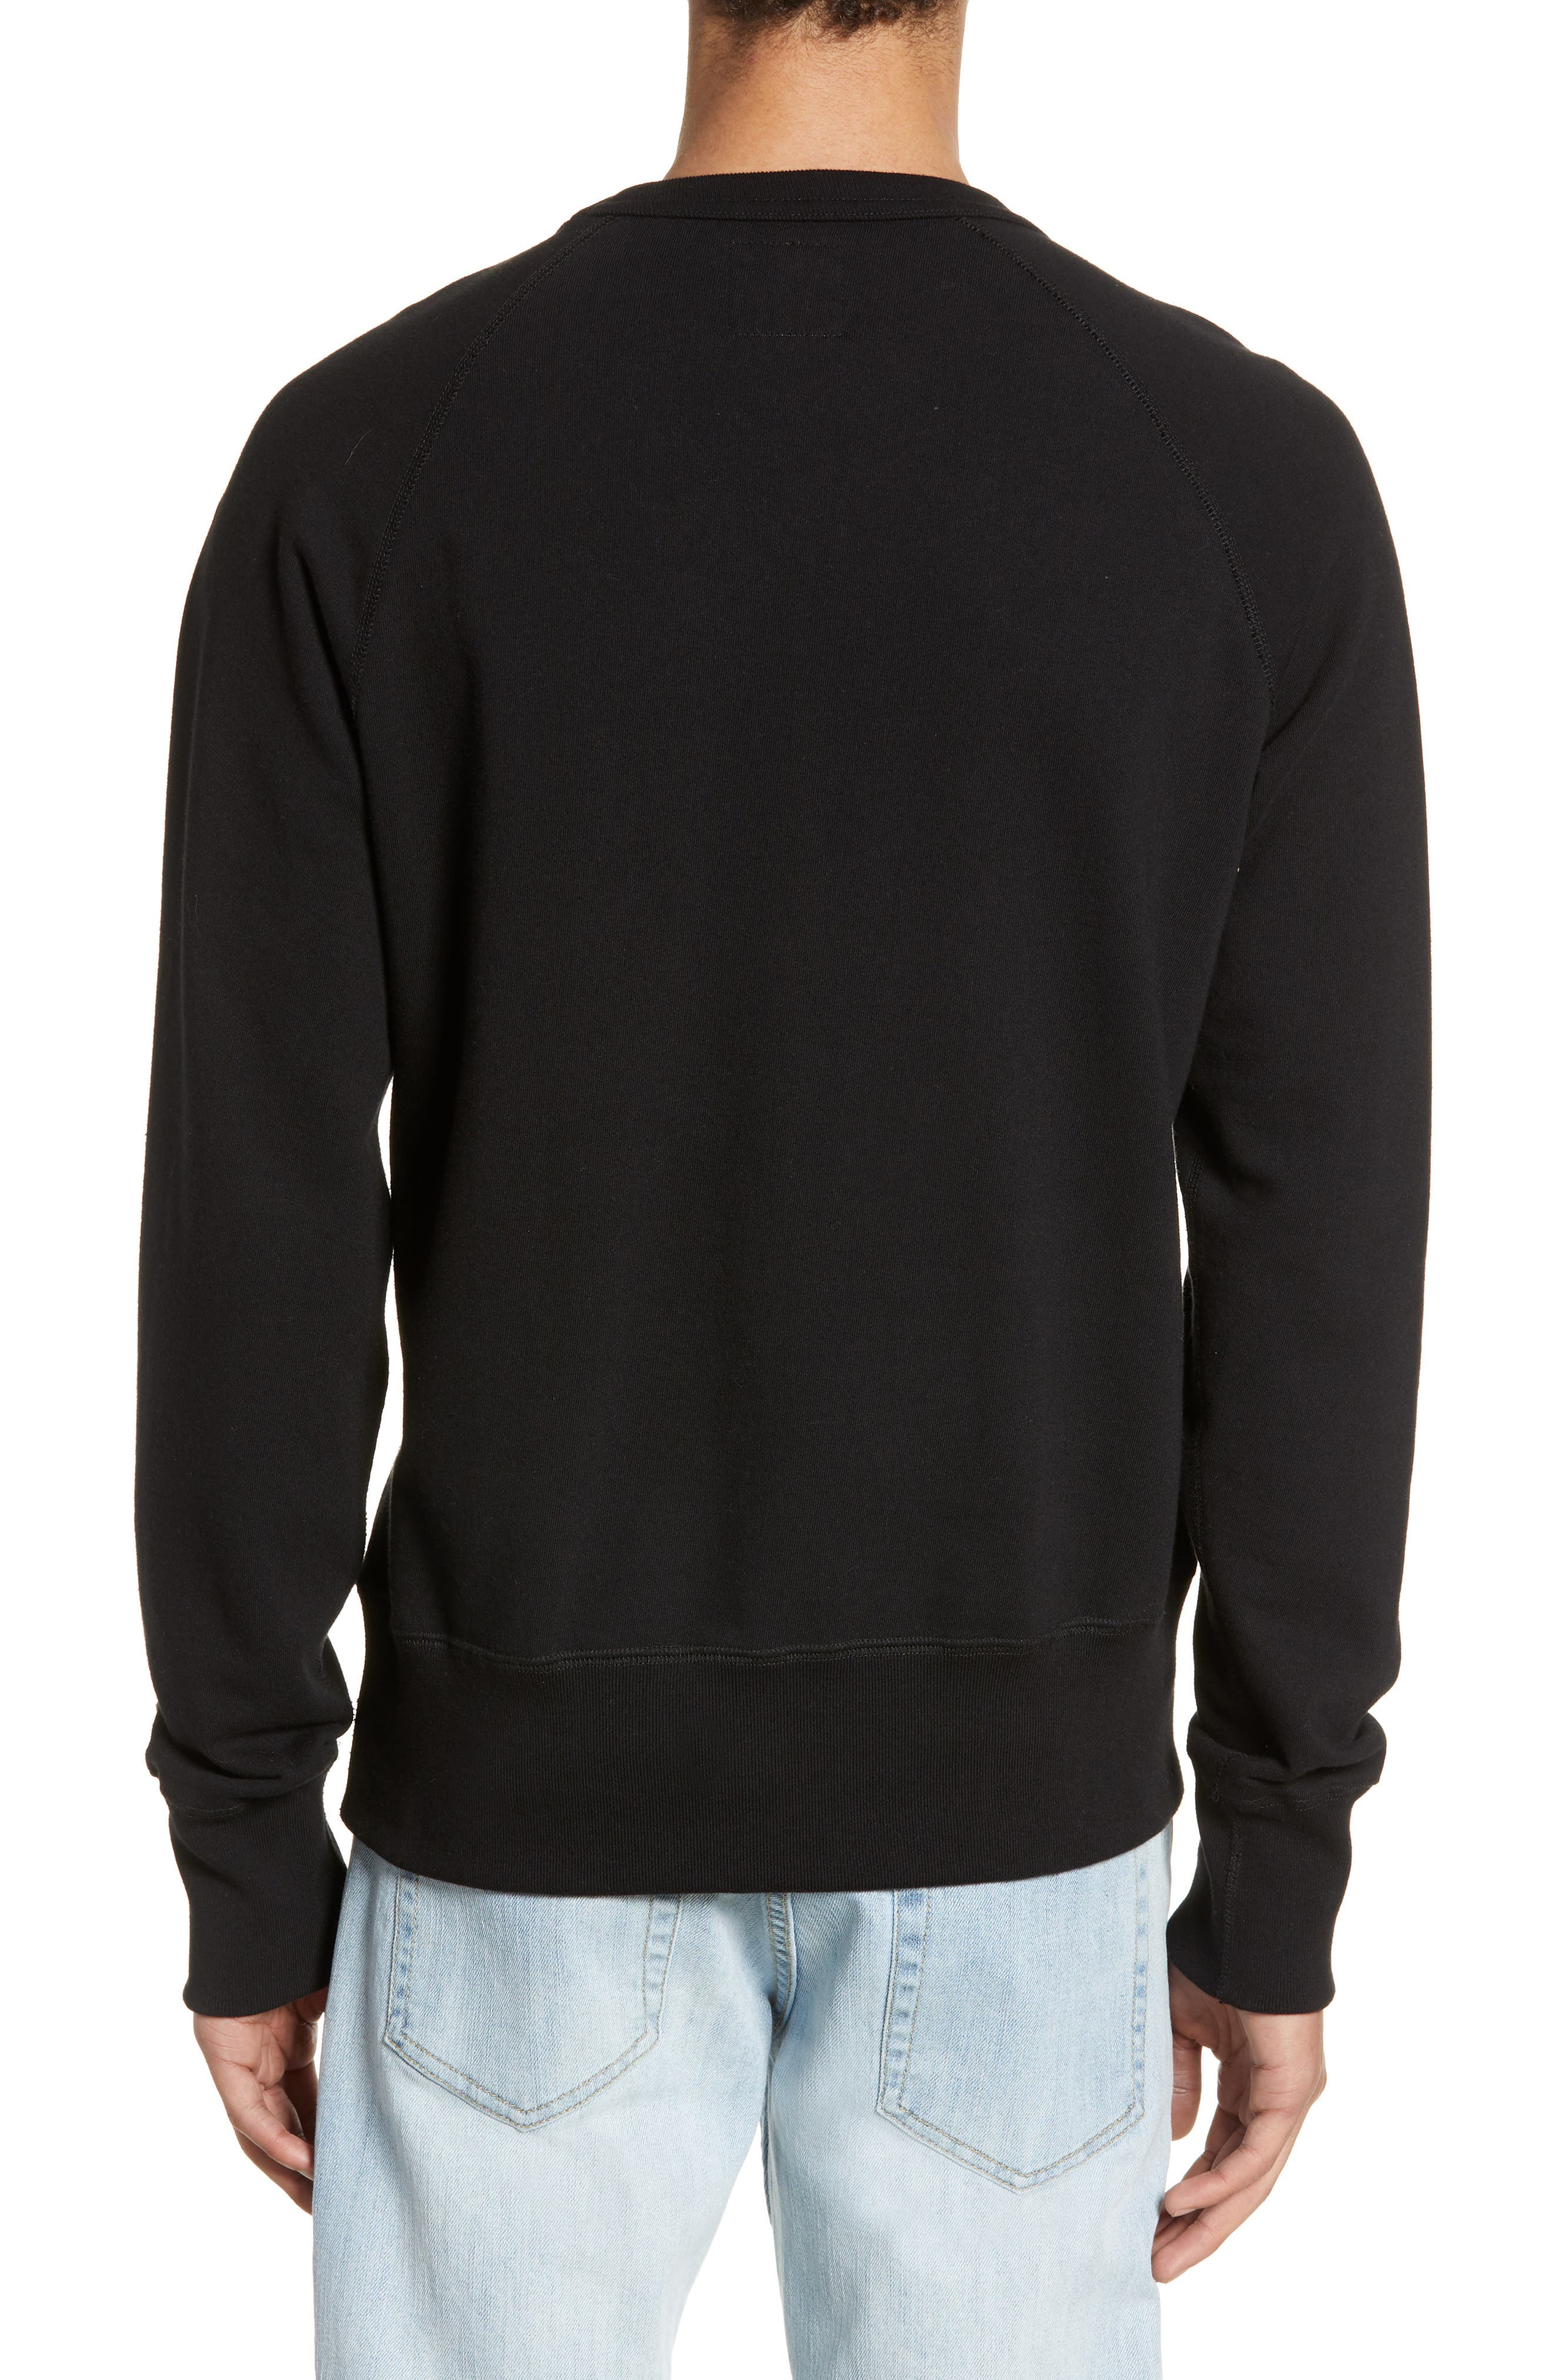 TODD SNYDER + CHAMPION, Todd Snyder Classic Pocket Sweatshirt, Alternate thumbnail 2, color, BLACK